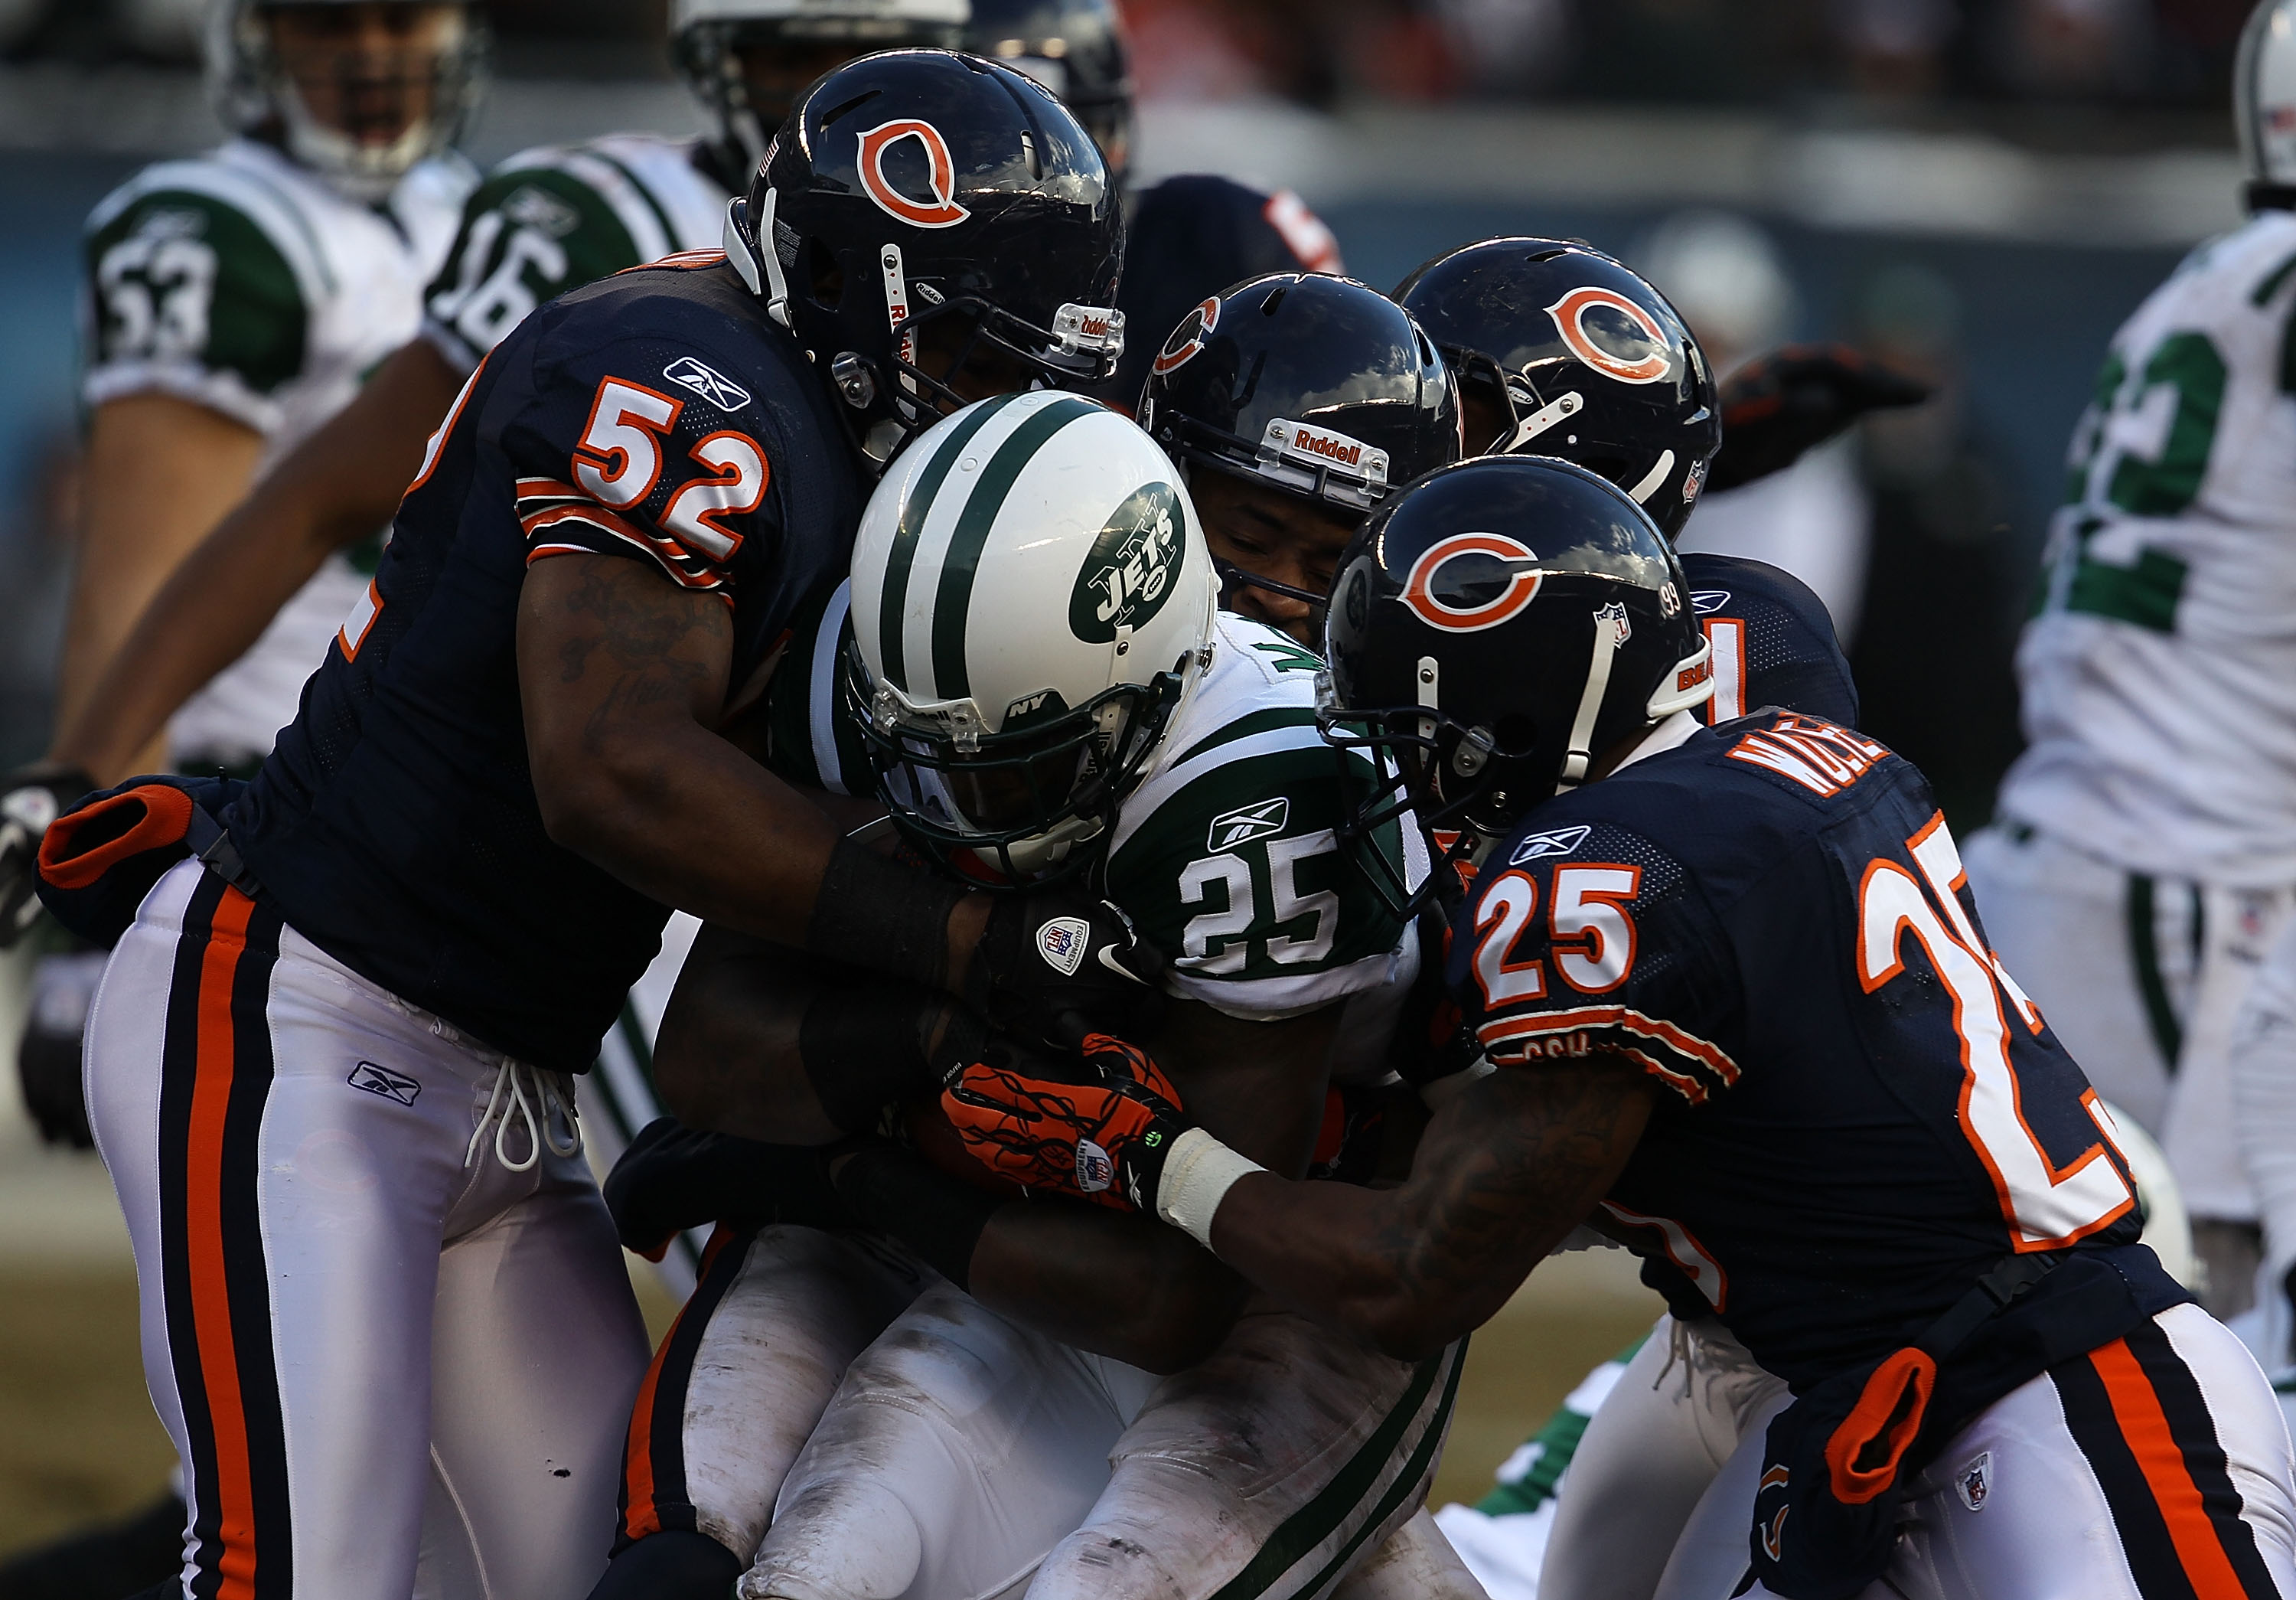 CHICAGO, IL - DECEMBER 26: Joe McKnight #25 of the New York Jets is tackled by Brian Iwuh #52, Rashied Davis #81, Corey Graham #21 and Garrett Wolfe #25 of the Chicago Bears at Soldier Field on December 26, 2010 in Chicago, Illinois. The Bears defeated th